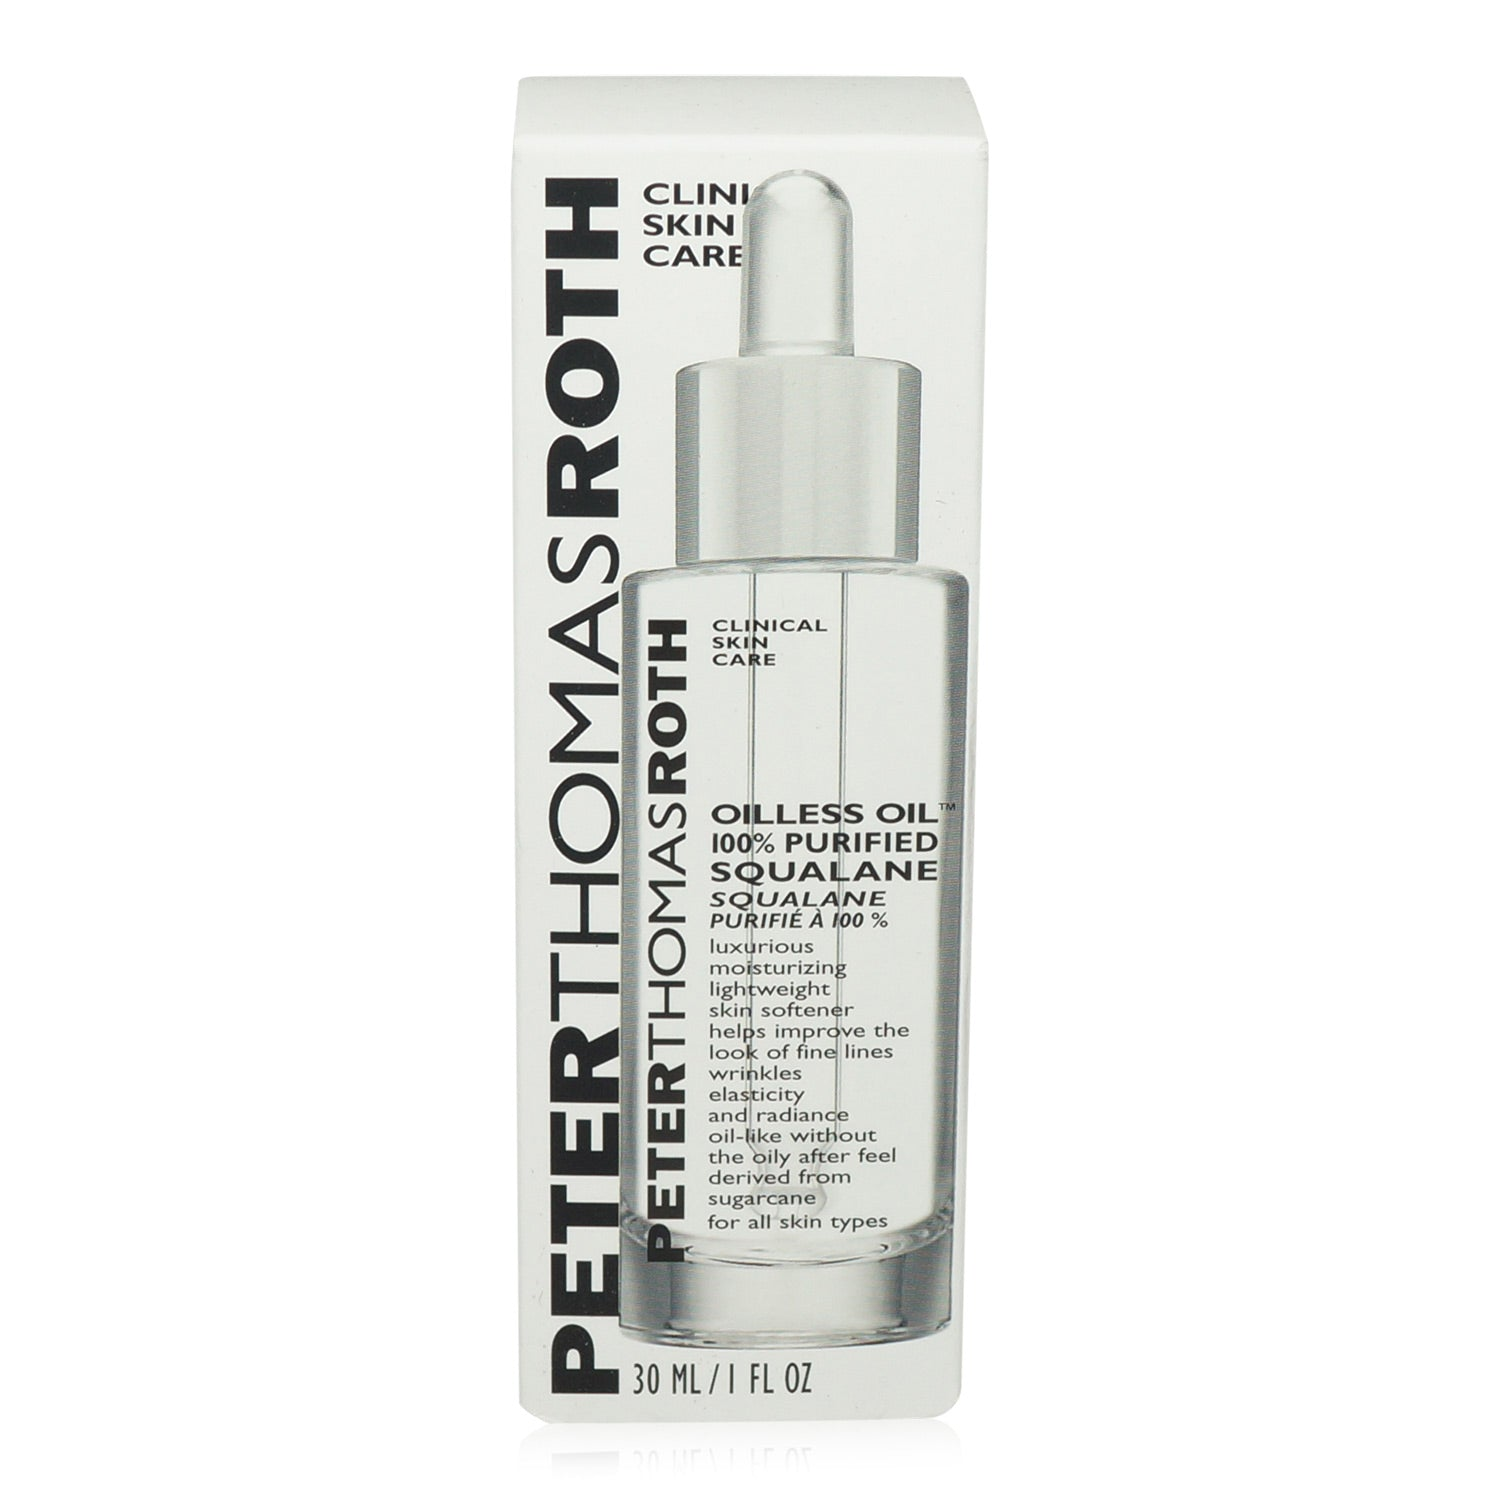 PETER THOMAS ROTH ~ OILLESS OIL 100% PURIFIED SQUALANE ~ 1FL OZ